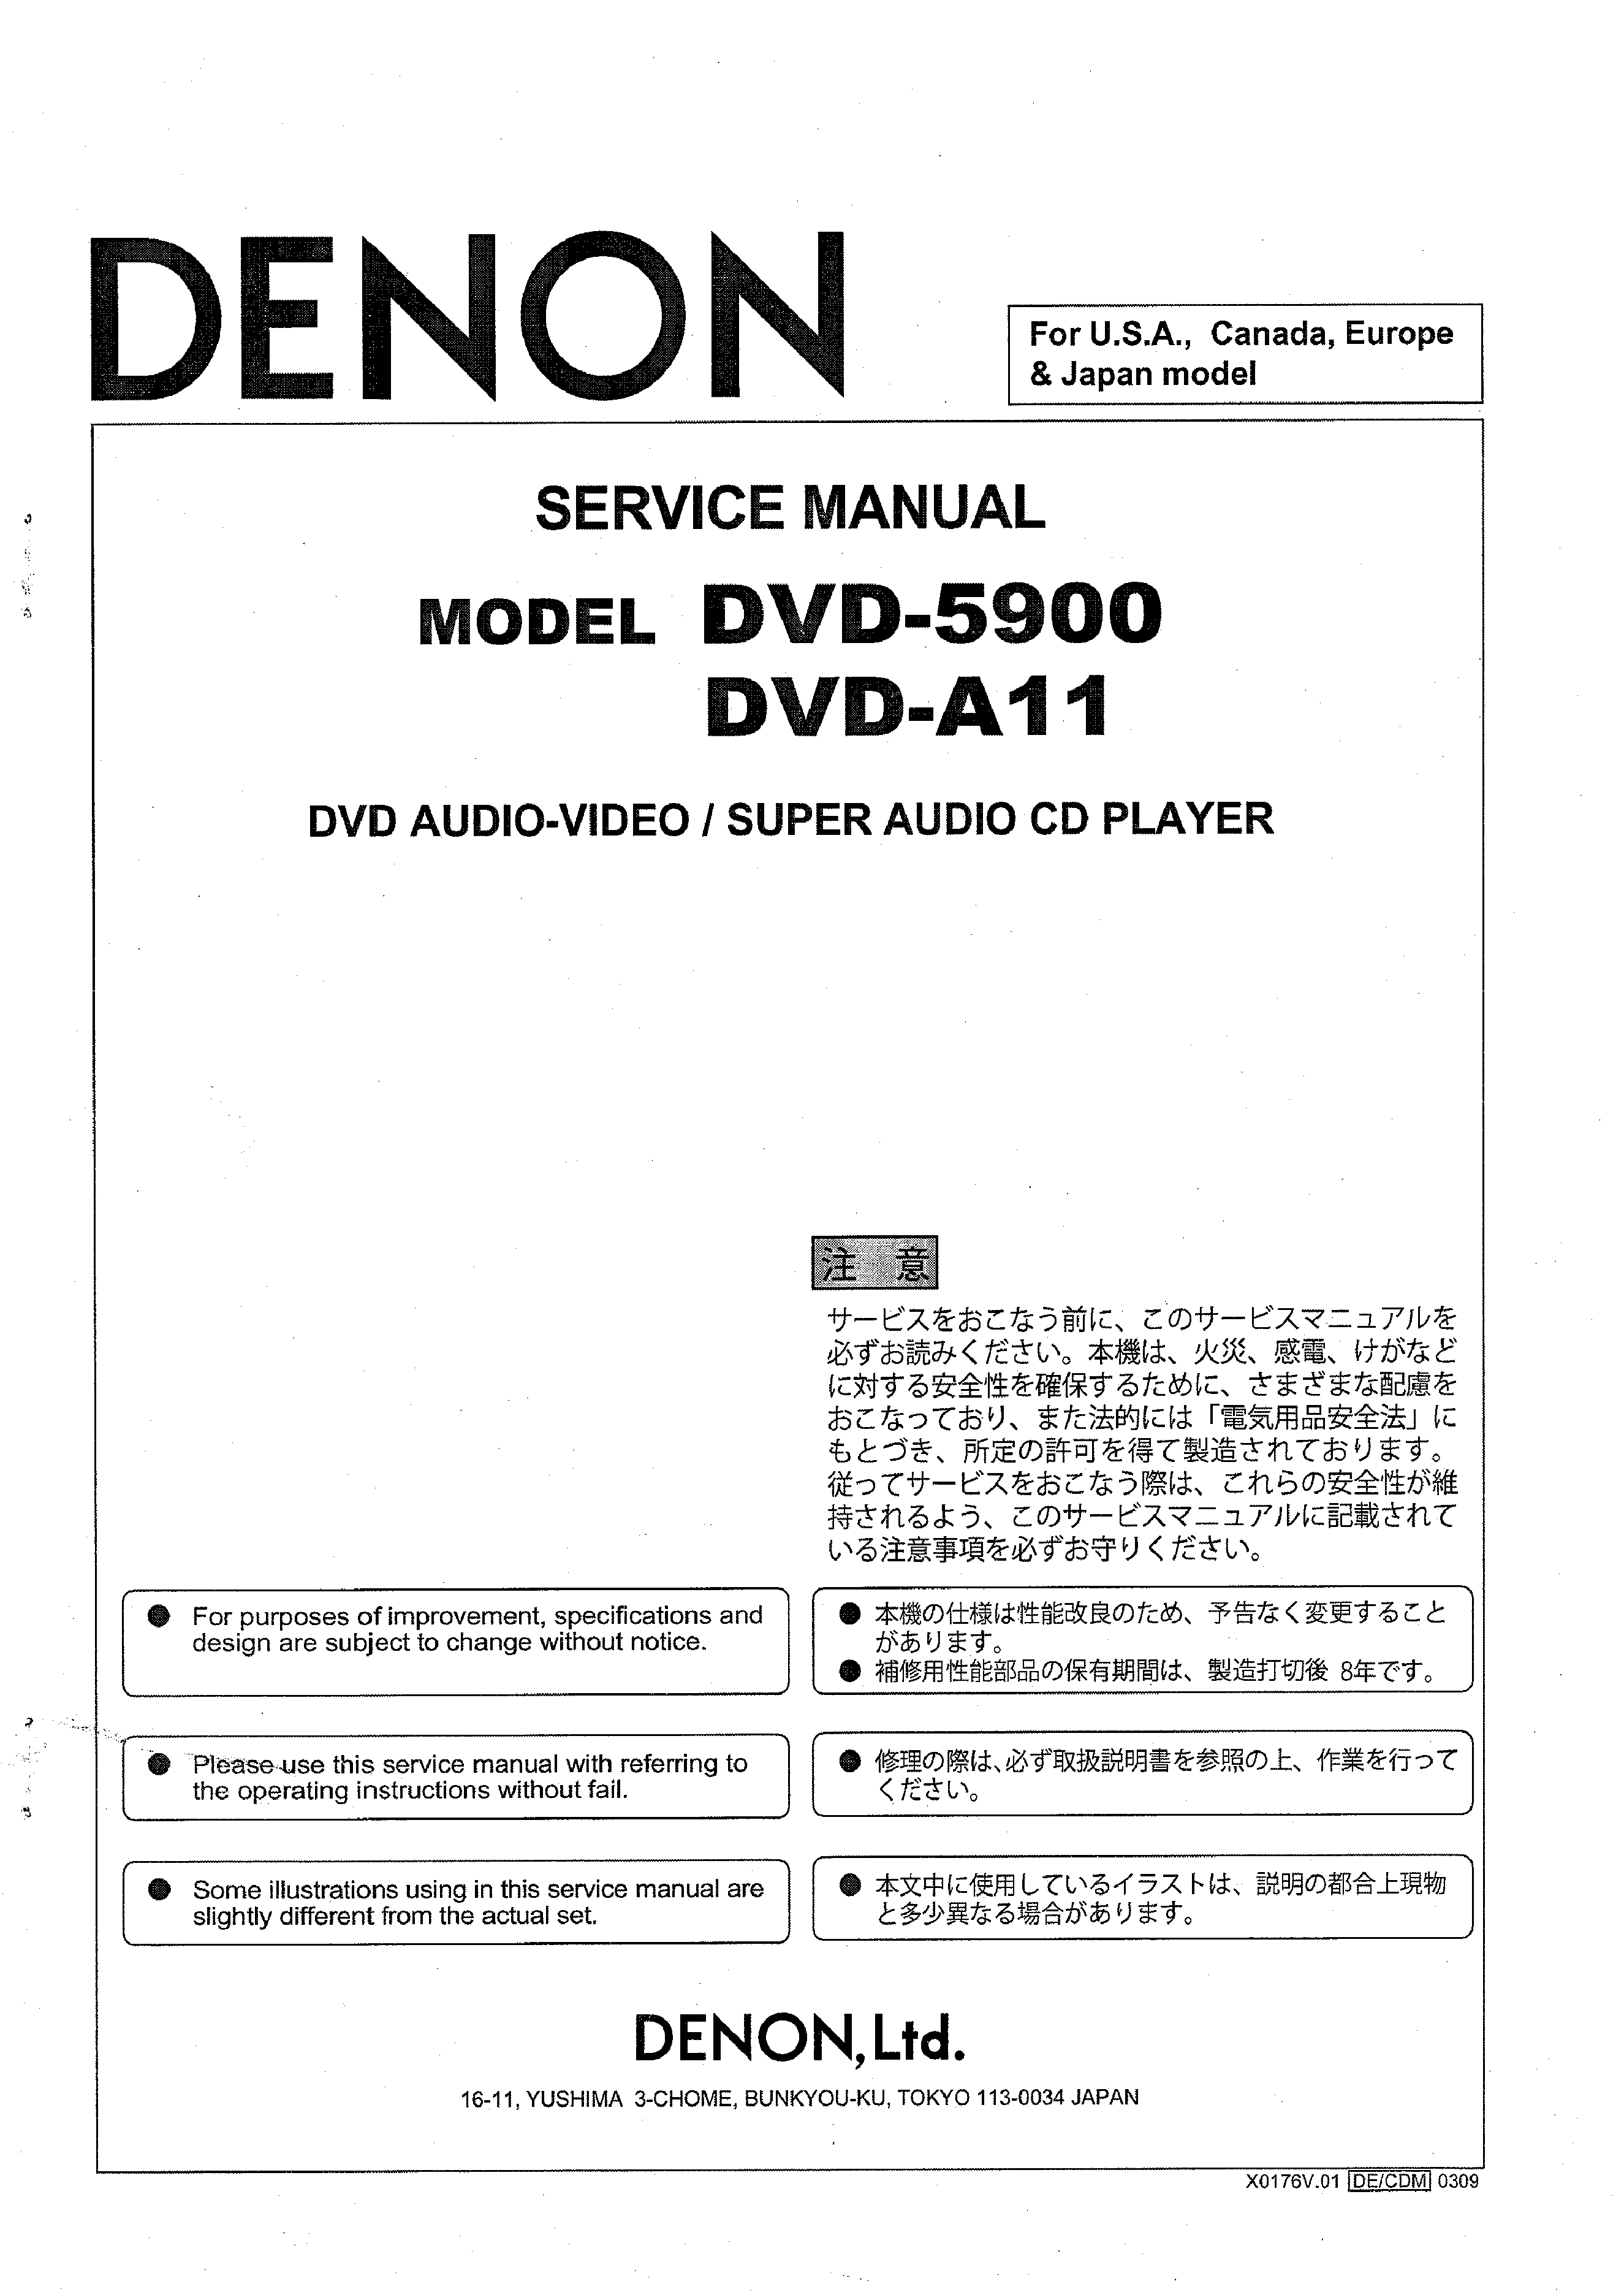 ... DVD-A11 Service Manual. Download. of 173. background image